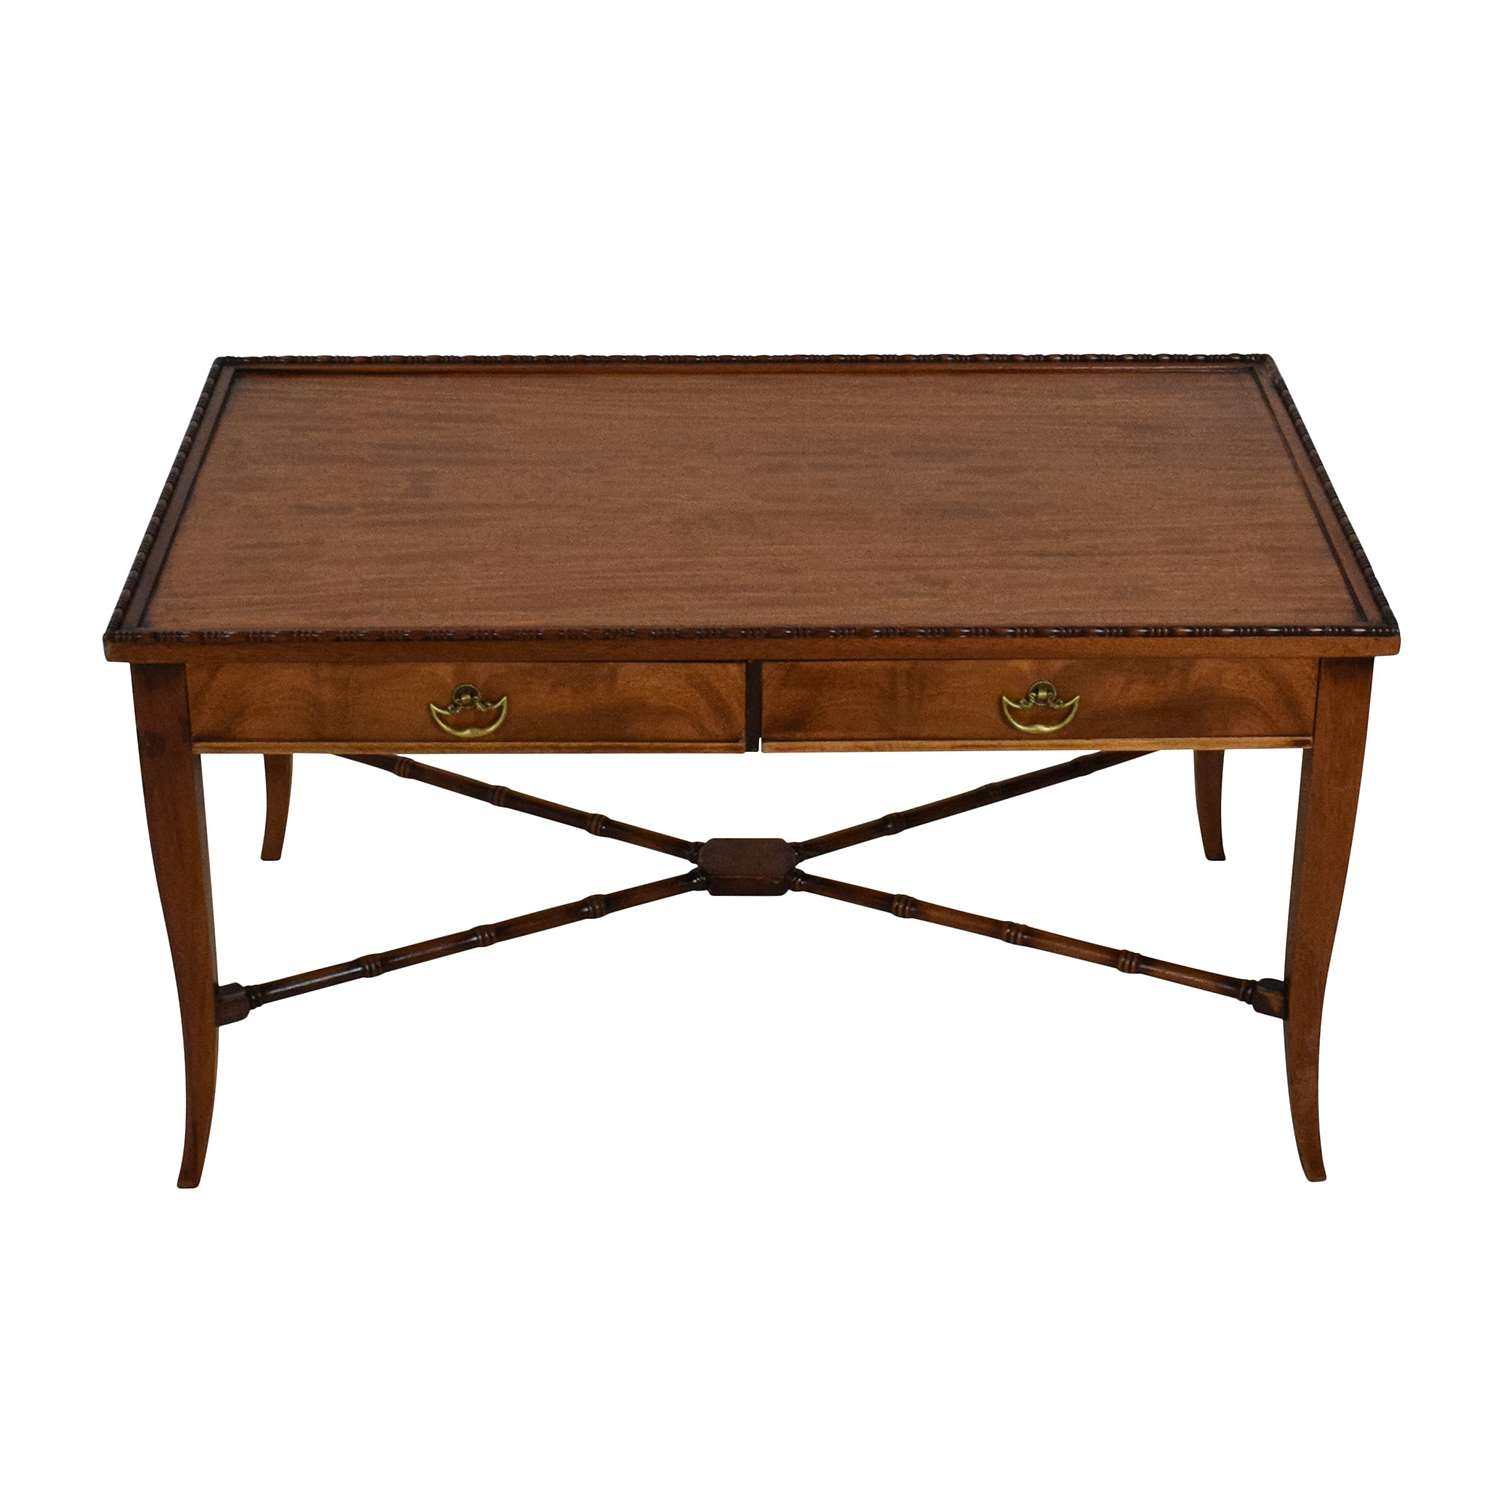 [%most Popular Mahogany Coffee Tables Pertaining To 51% Off – Imperial Grand Rapids Imperial Grand Rapids Mahogany|51% Off – Imperial Grand Rapids Imperial Grand Rapids Mahogany For Latest Mahogany Coffee Tables%] (View 20 of 20)